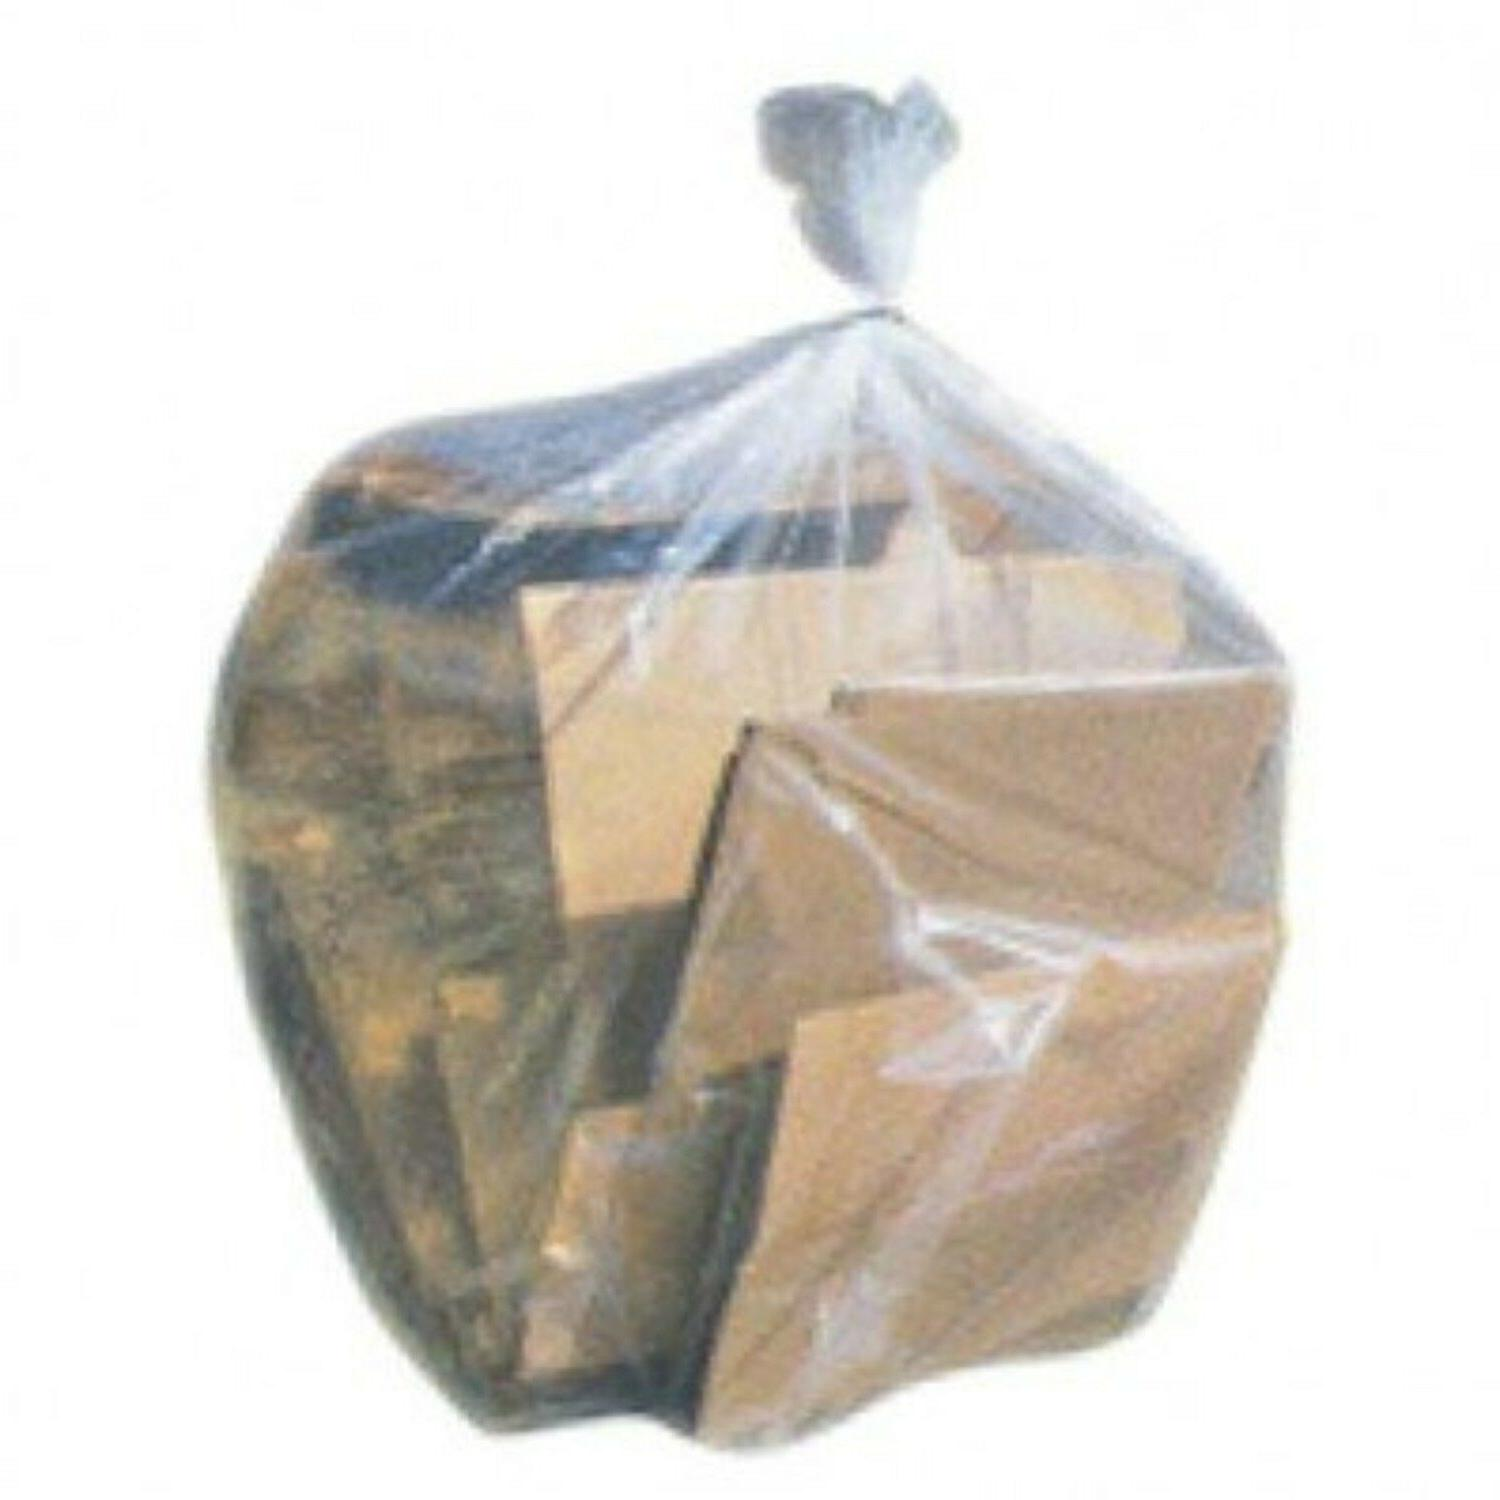 Plasticplace Clear Garbage Bags 33x39 33 Gal 100/case 1.2 Mi